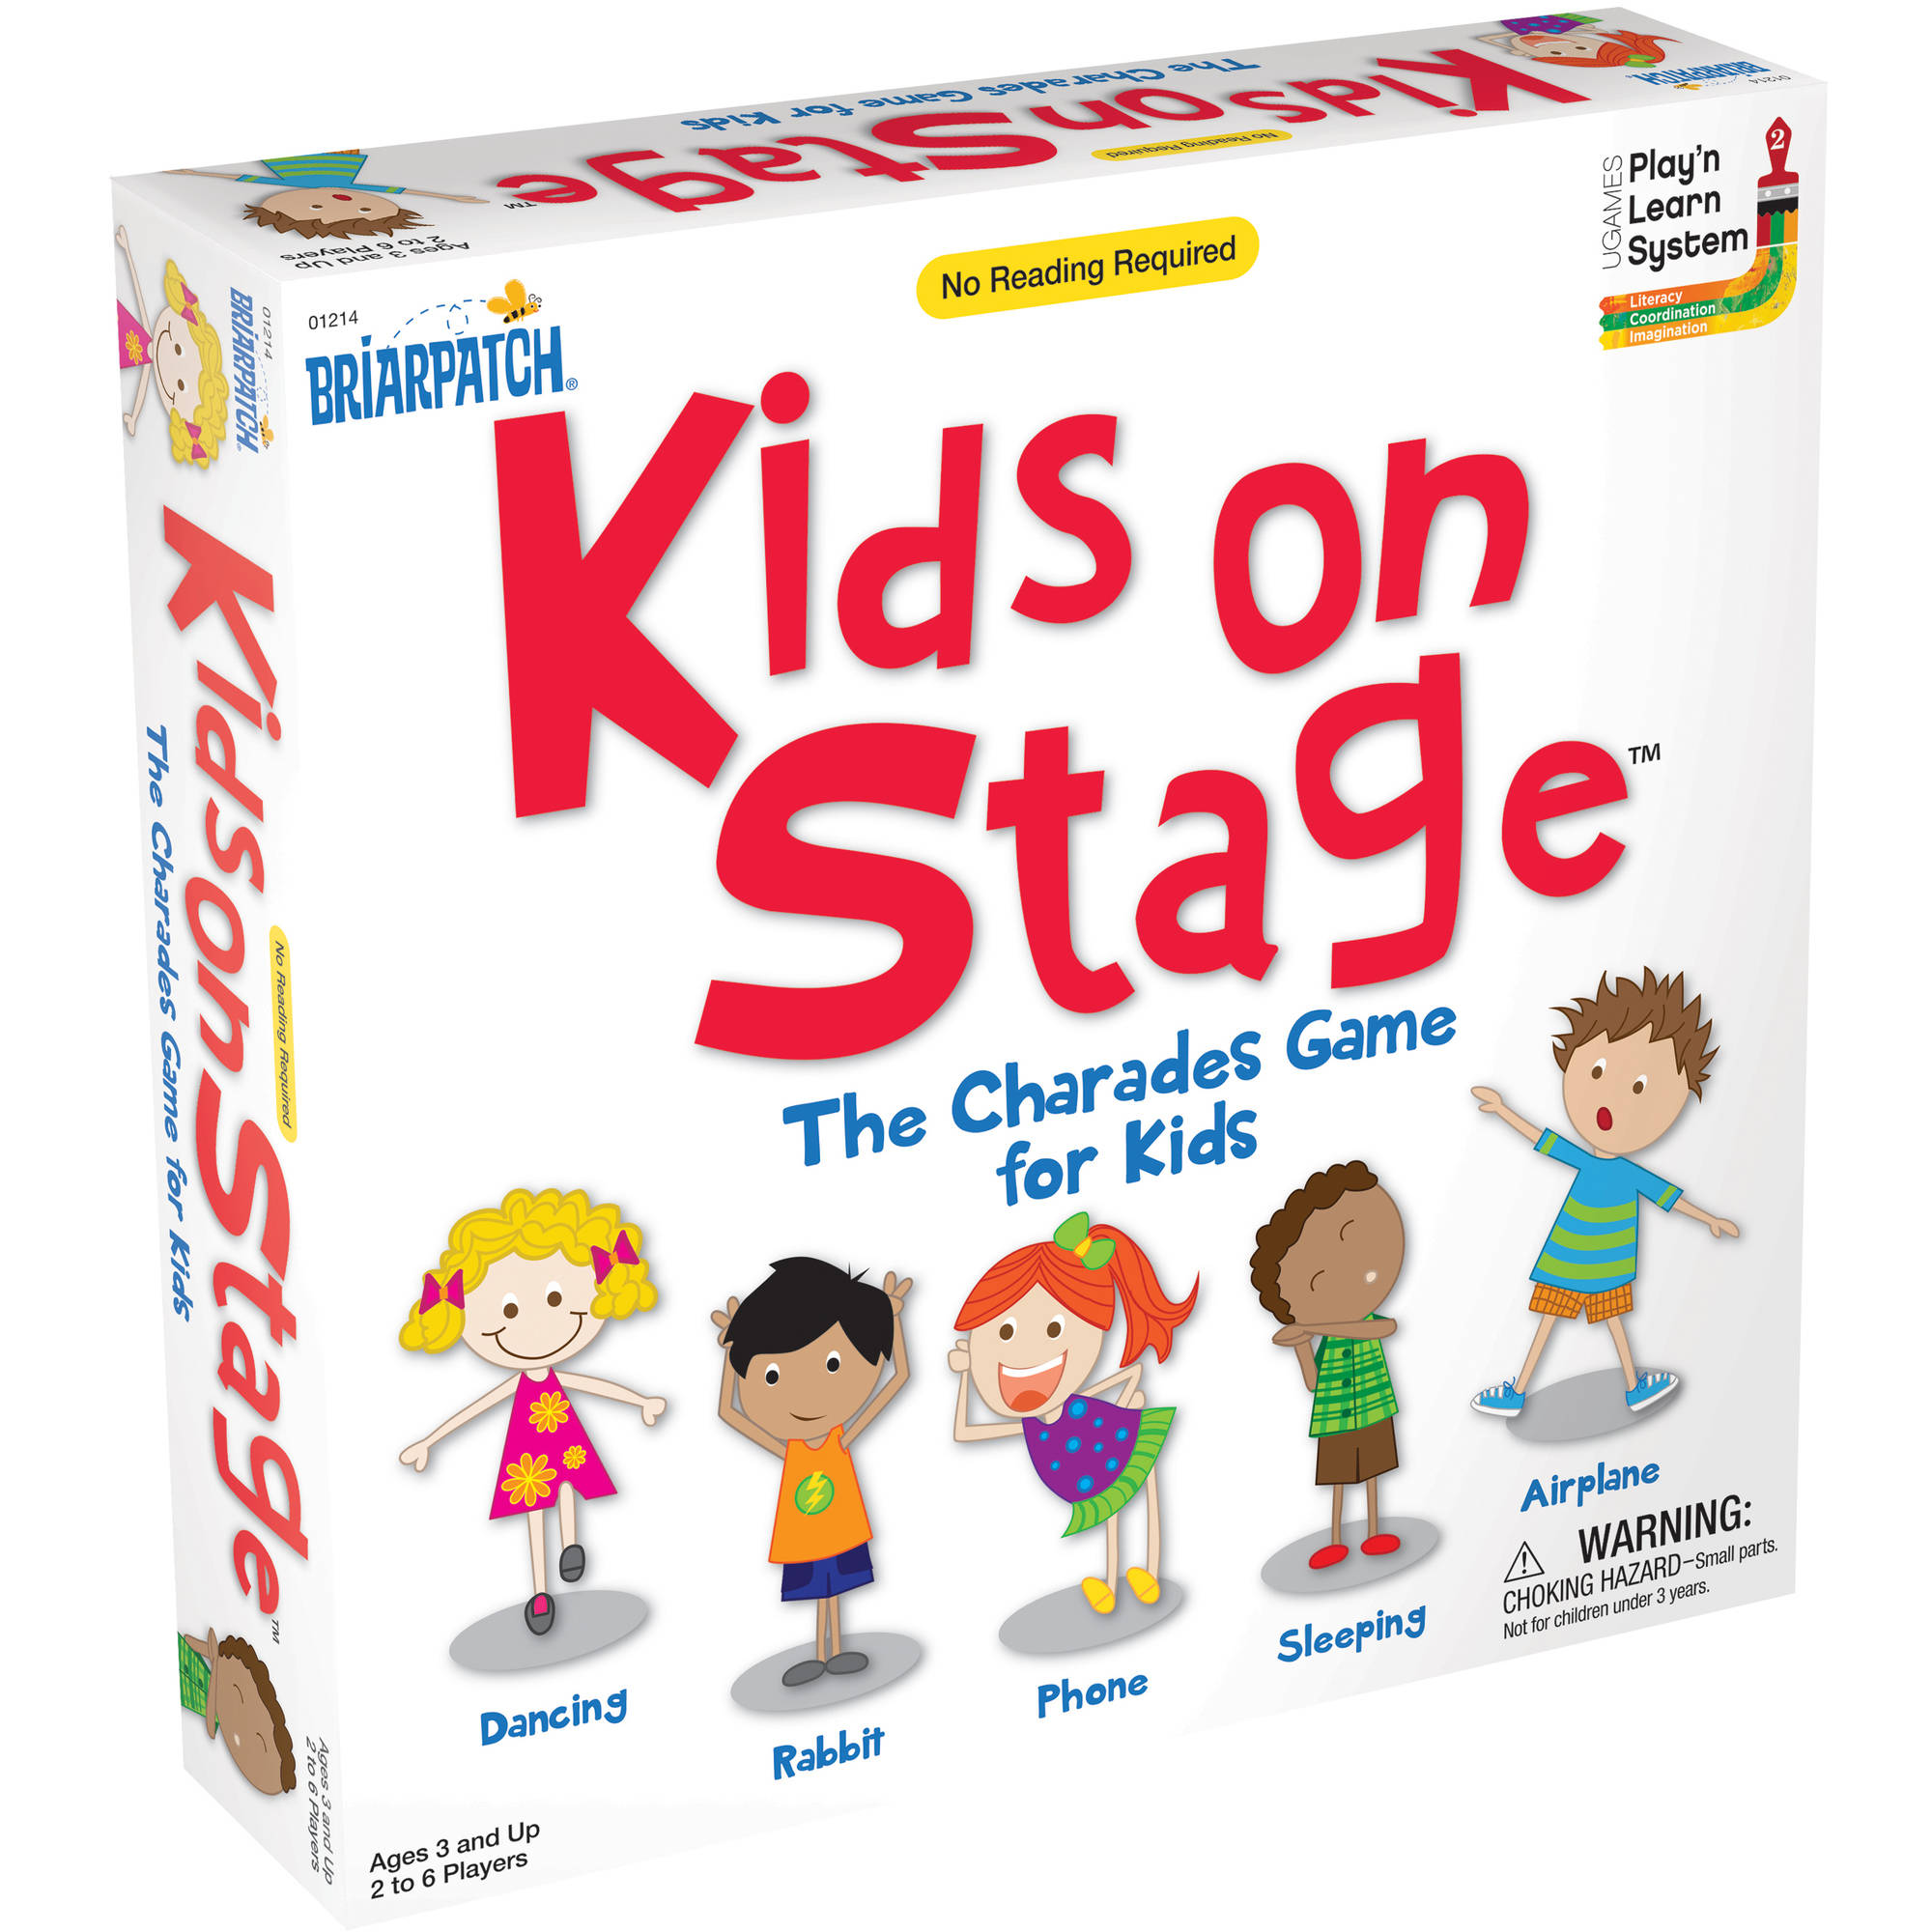 Kids On Stage – The Charades Game For Kids (Walmart)